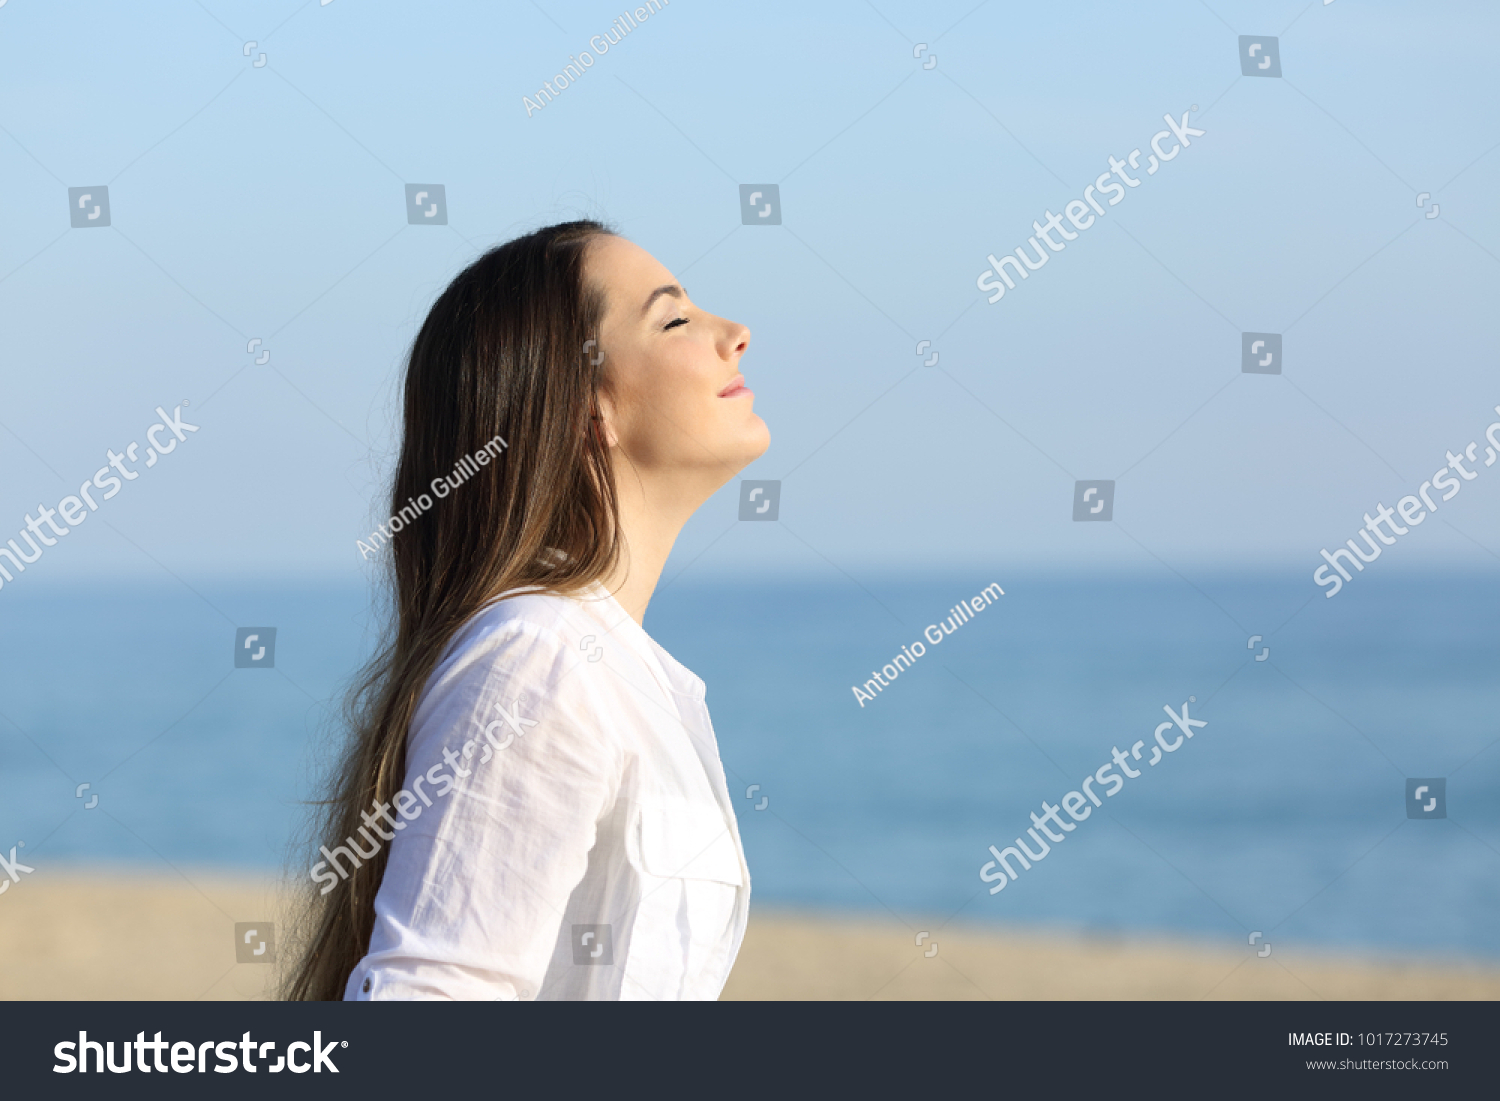 Side view portrait of a woman relaxing breathing fresh air on the beach #1017273745